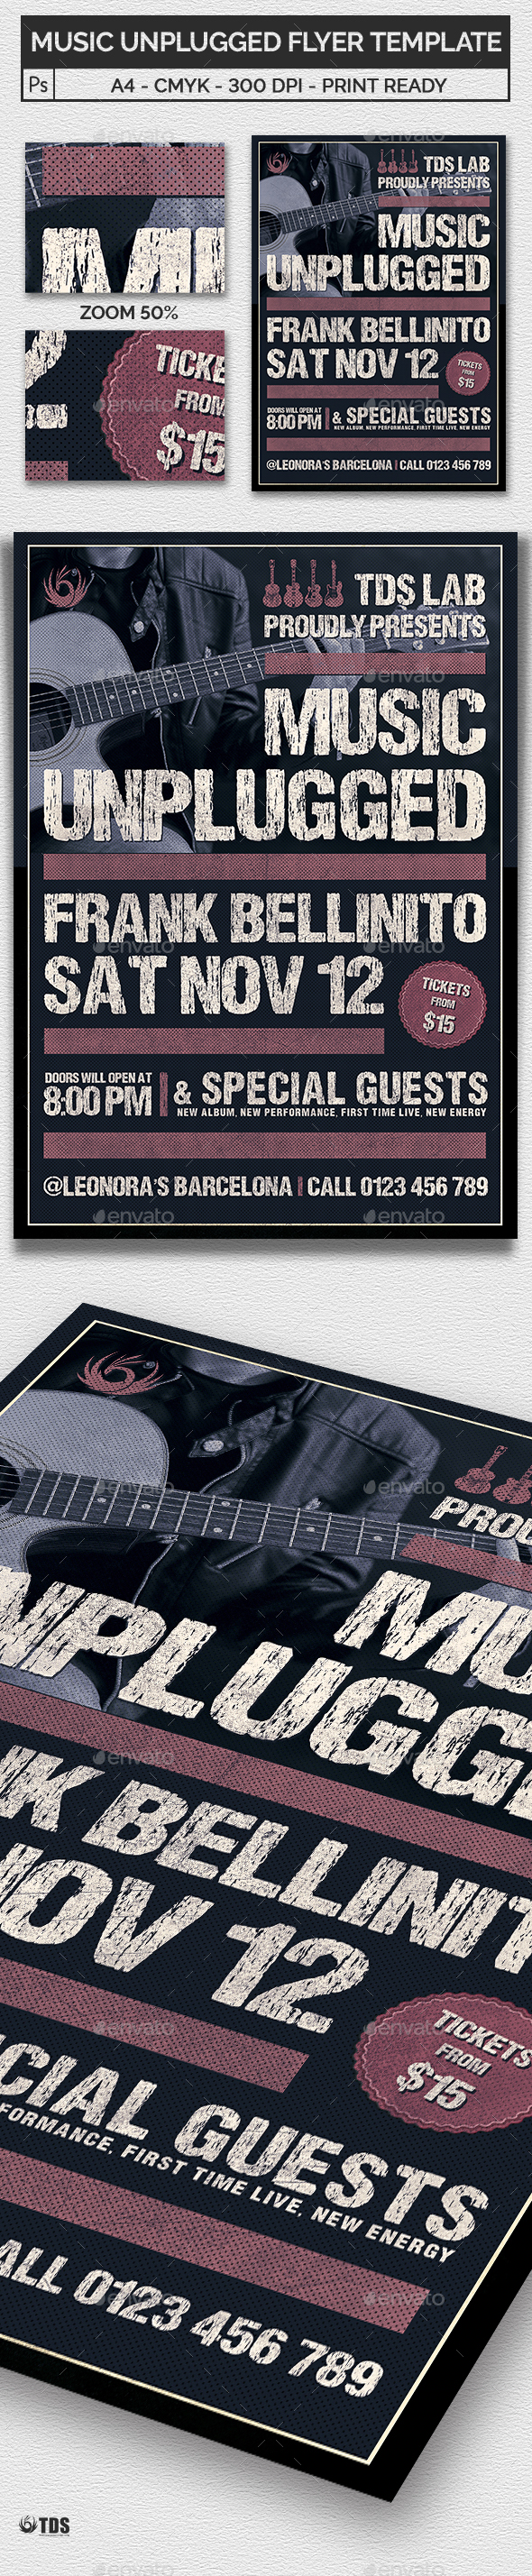 Music Unplugged Flyer Template - Concerts Events